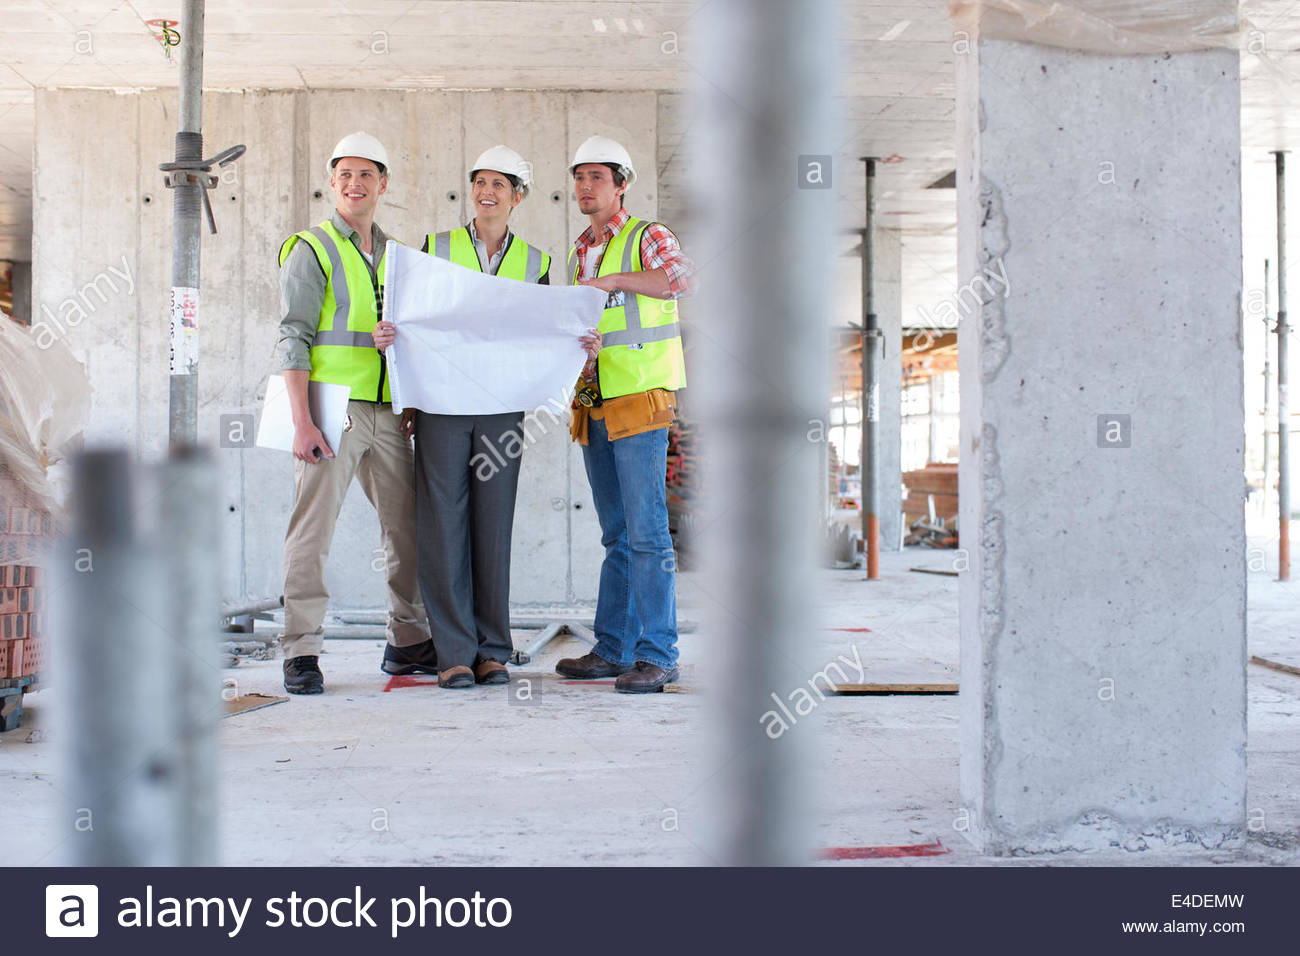 Construction workers looking at blueprints on construction site - Stock Image